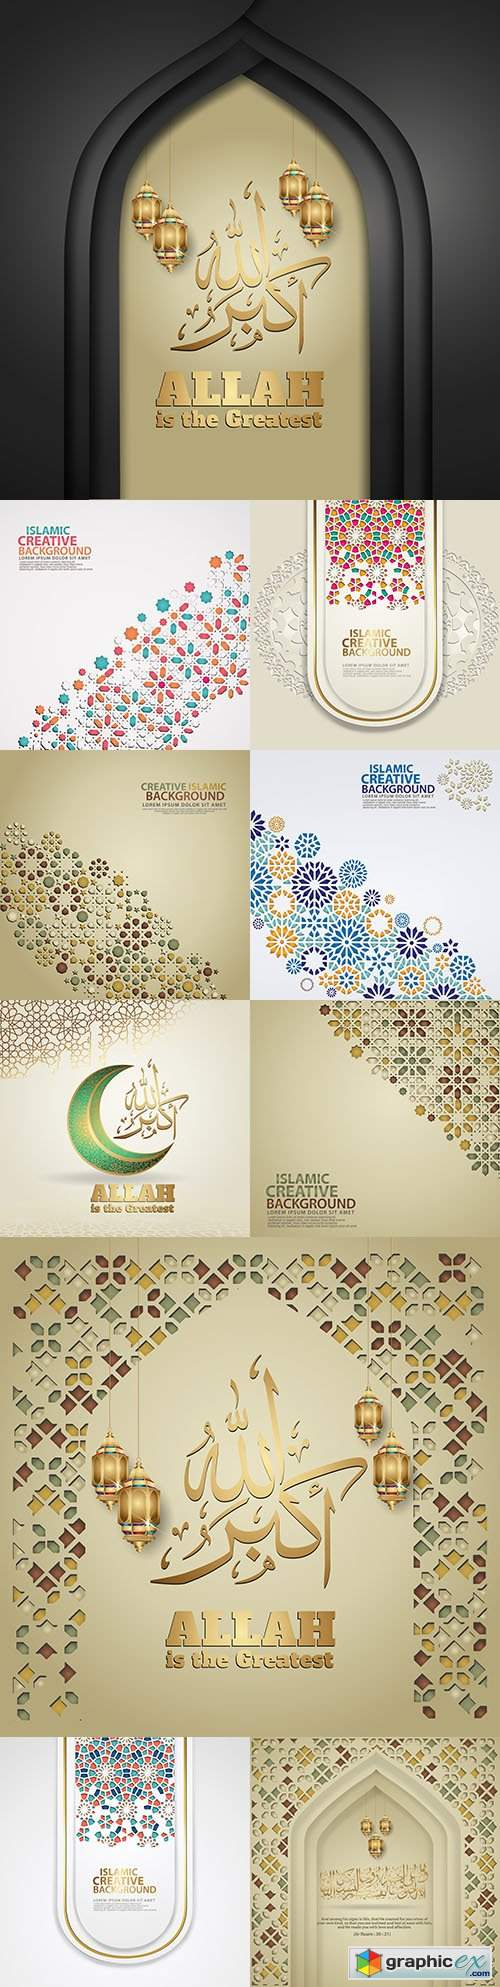 Elegant Islamic creative background with decorative colourful mosaic